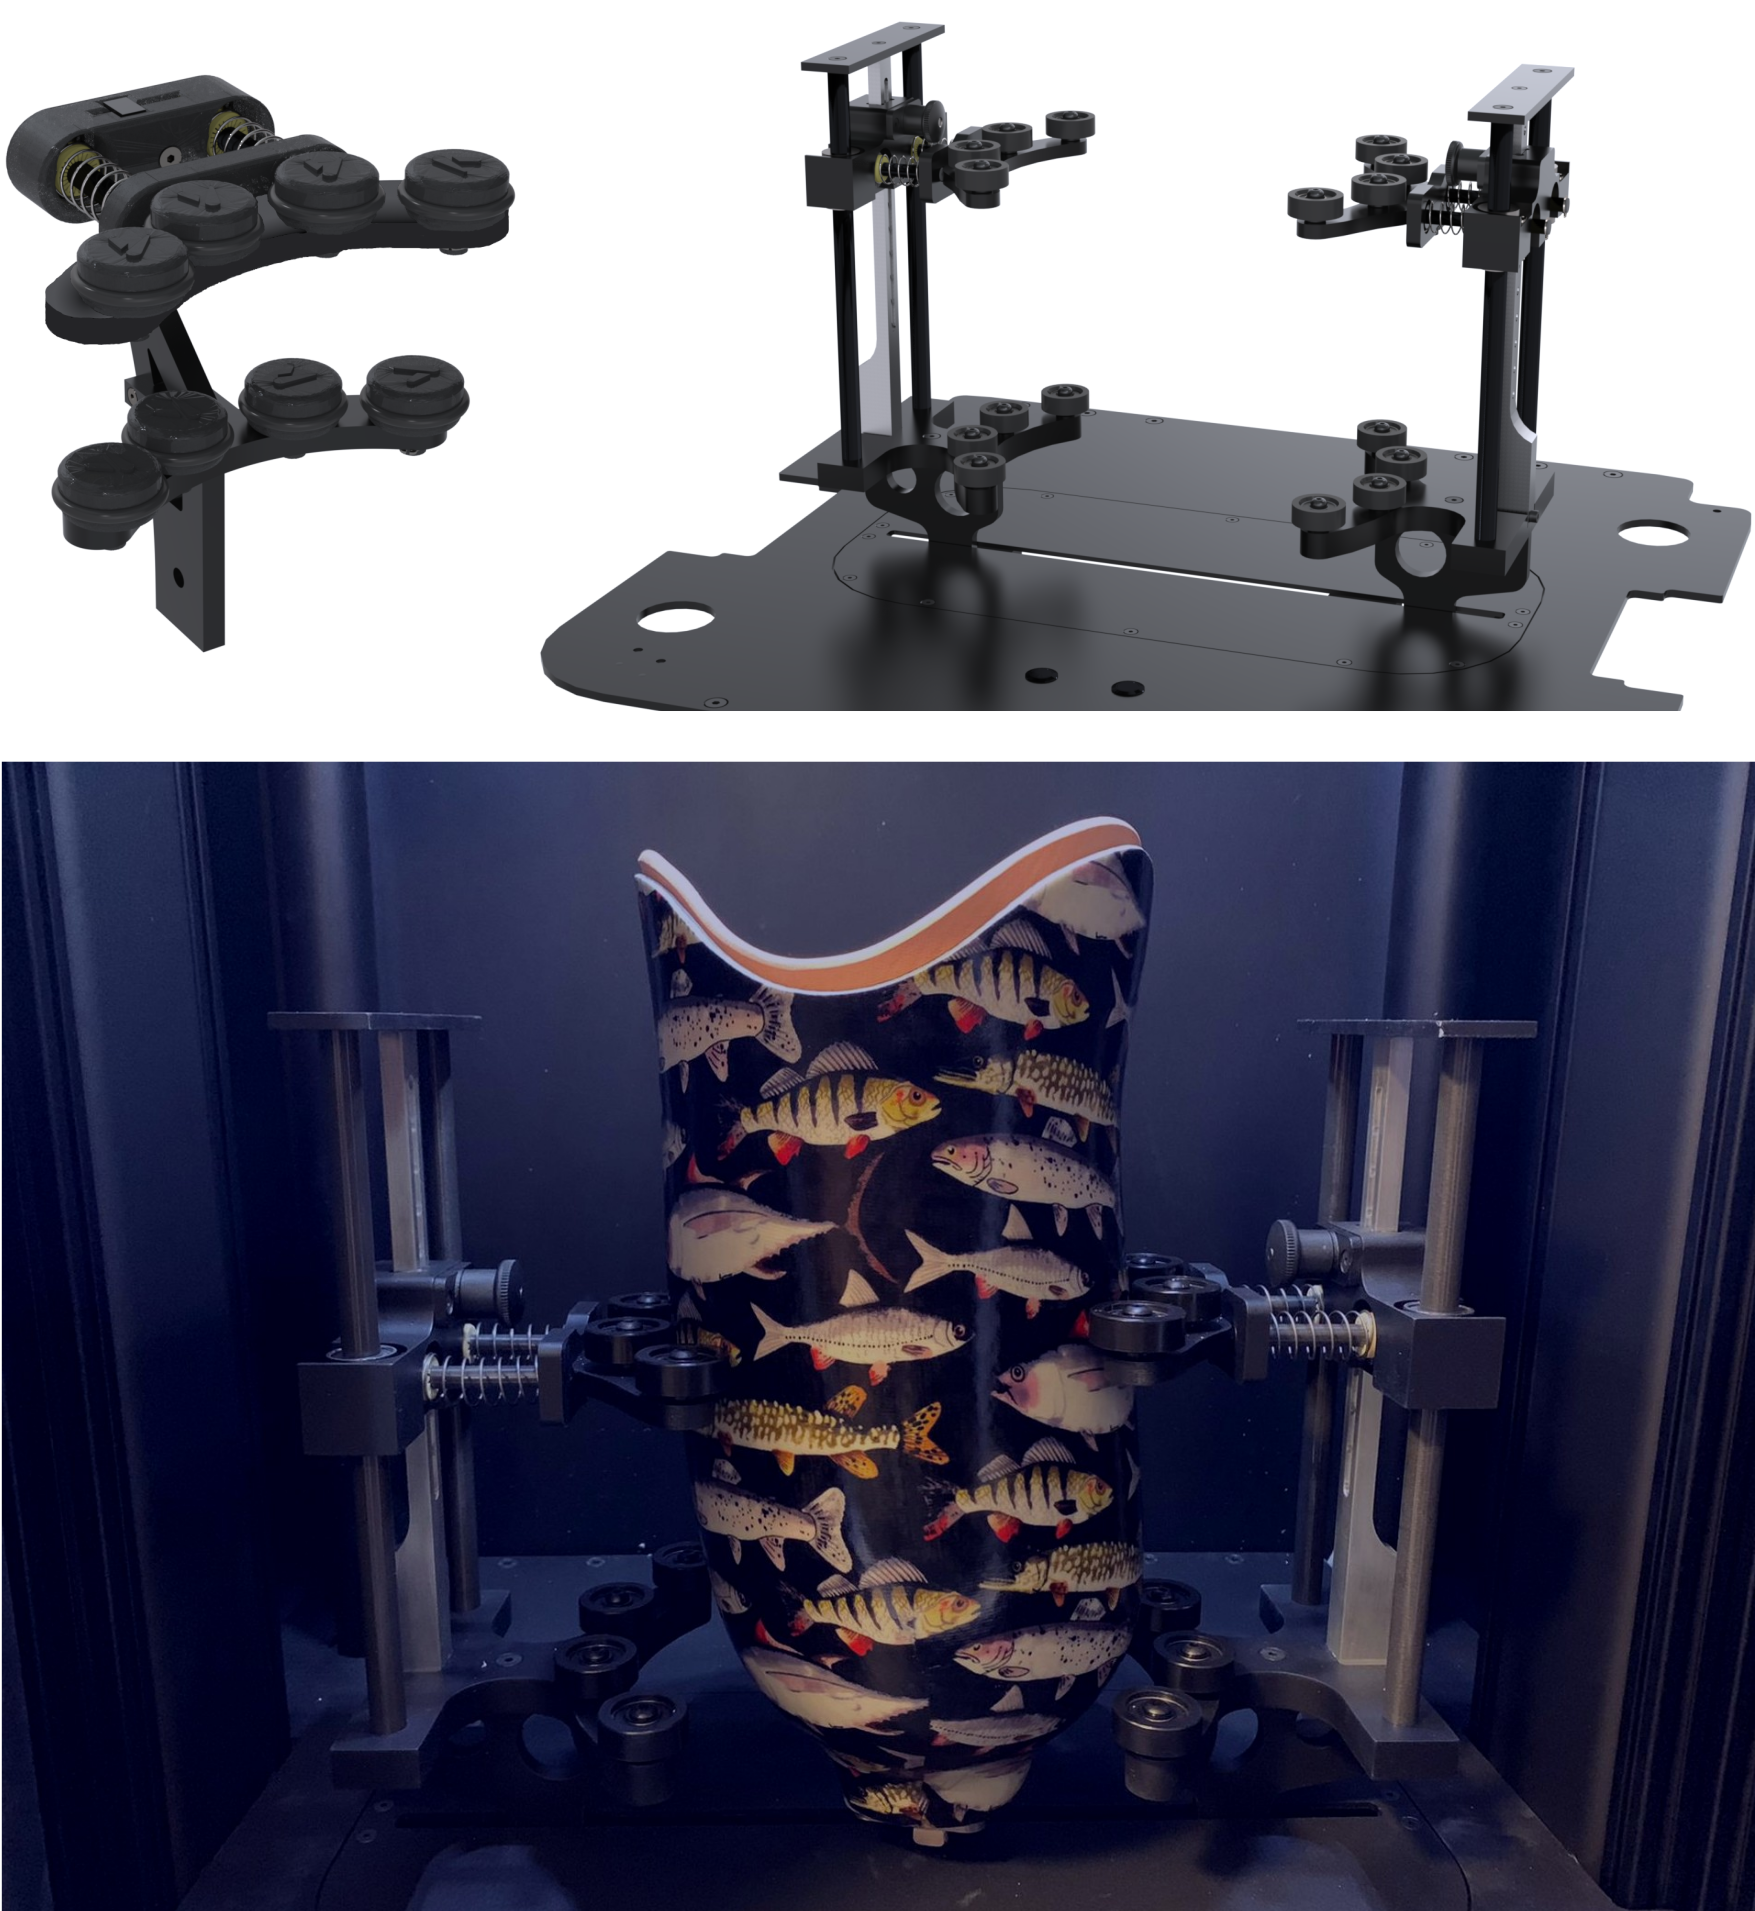 On the left, (half of) the first iteration of the socket gripper. On the right, the latest iteration, where height adjustment is possible. Below, this iteration in action, holding still a rather fishy socket.